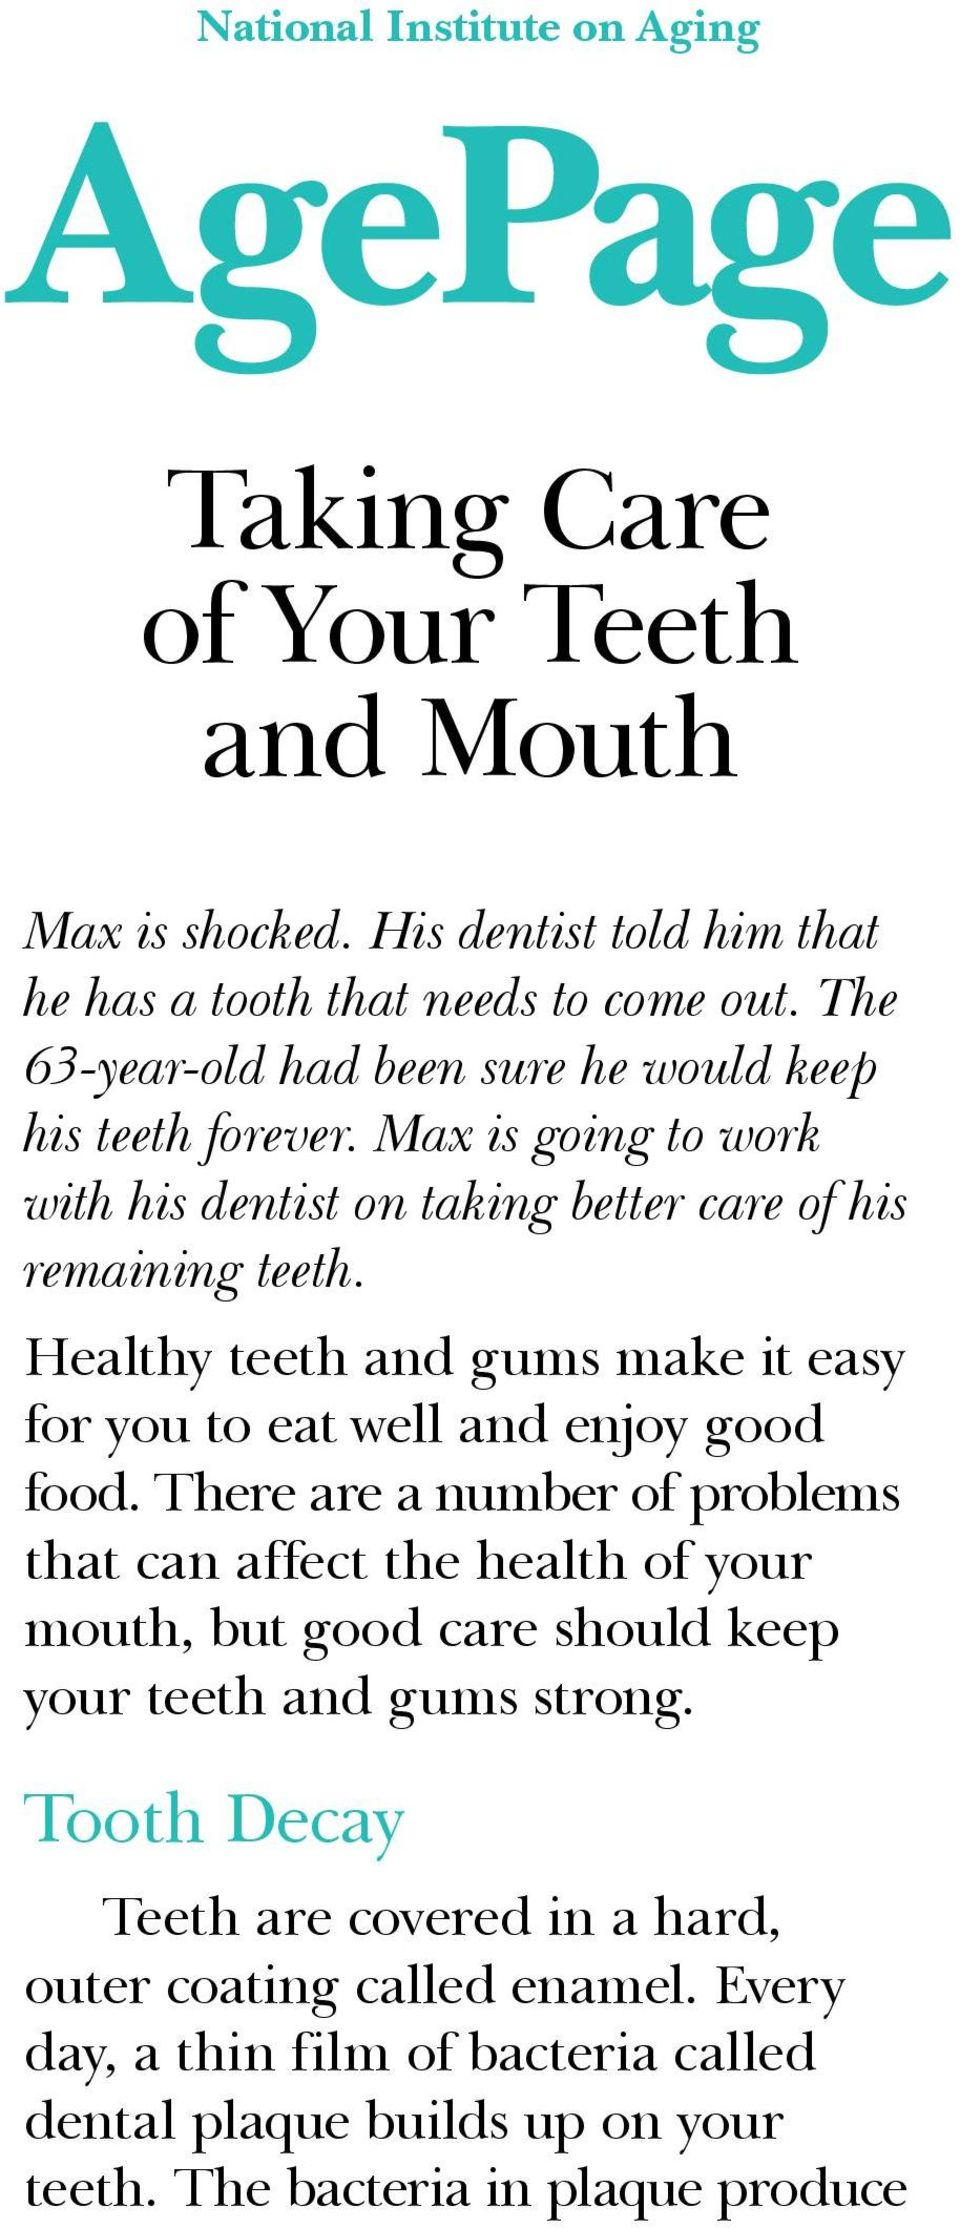 Healthy teeth and gums make it easy for you to eat well and enjoy good food.